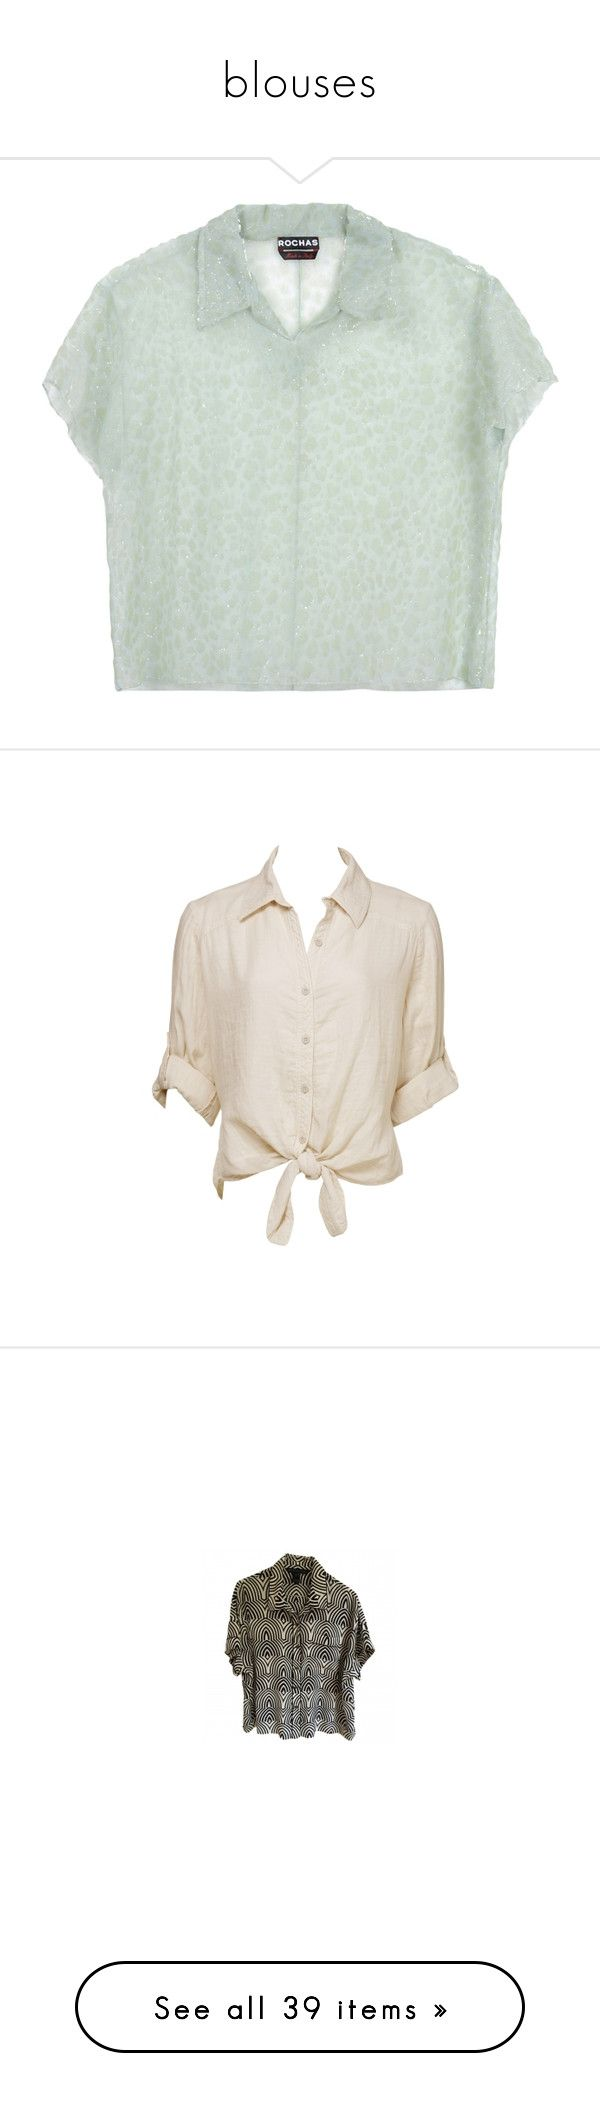 """""""blouses"""" by flowersinponds ❤ liked on Polyvore featuring tops, blouses, shirts, rochas, t-shirts, light green, short sleeve tops, shirt blouse, short sleeve blouse and green shirt"""